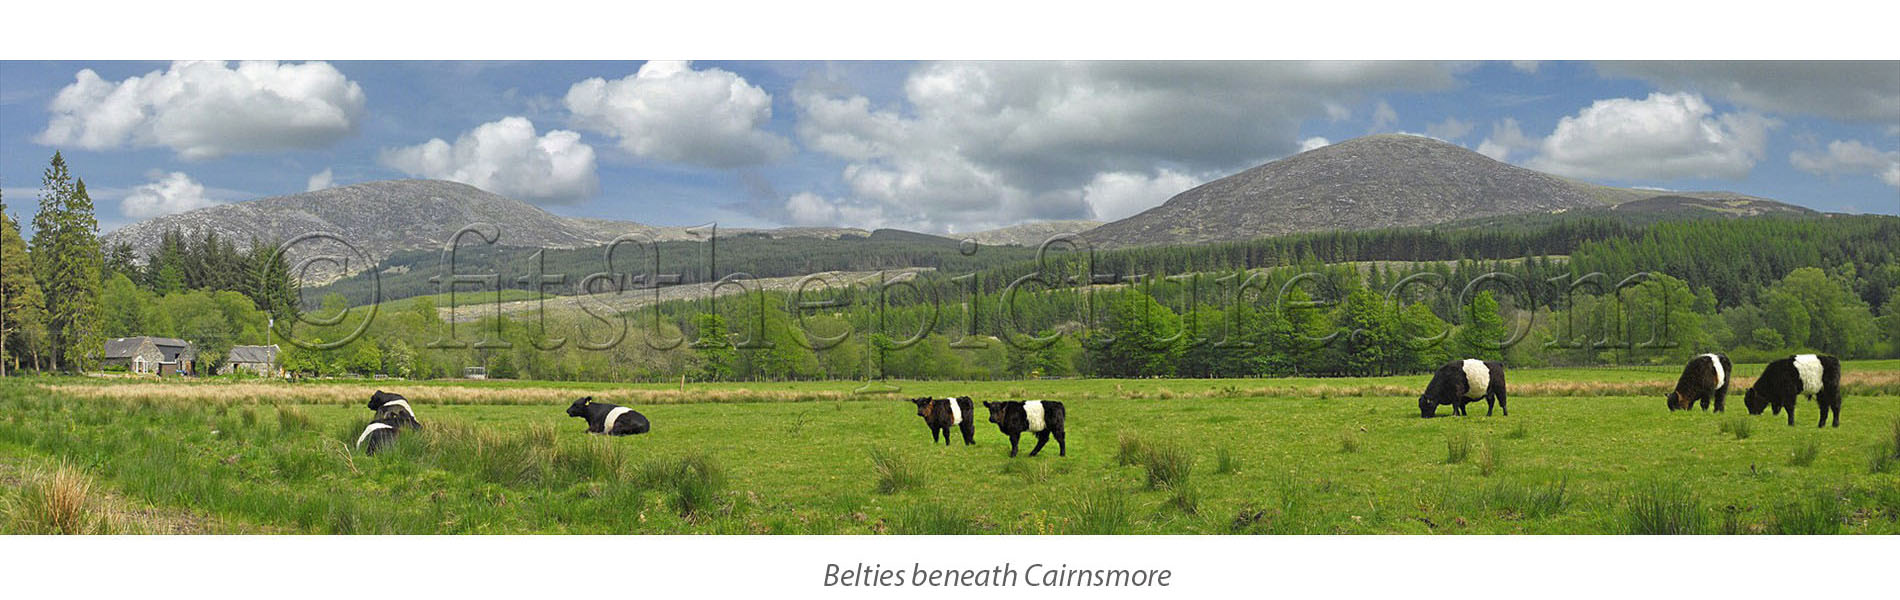 belties_beneath_cairnsmore.jpg